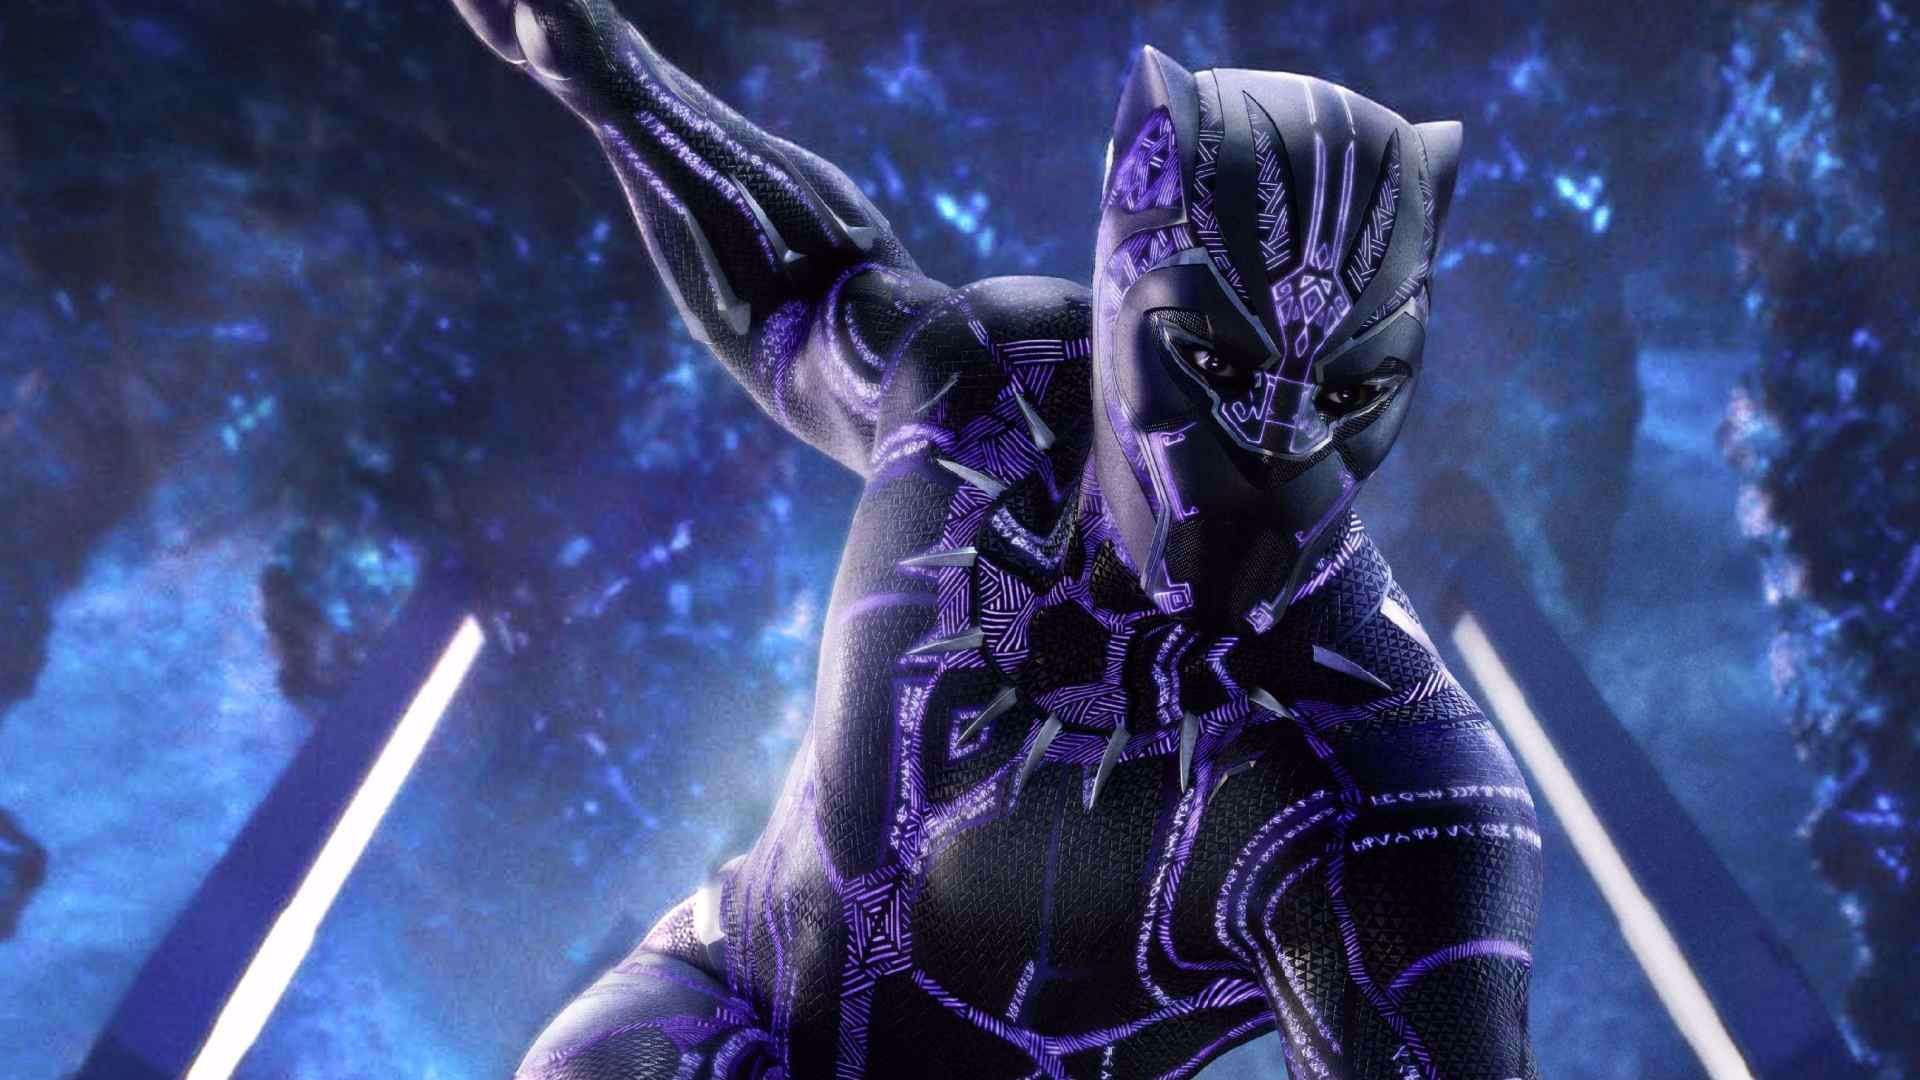 You Can Download Many Types Of Wallpapers For Free Like Black Panther Wallpaper Hd For Your Des In 2020 Black Panther Marvel Black Panther Art Black Panther Movie 2018